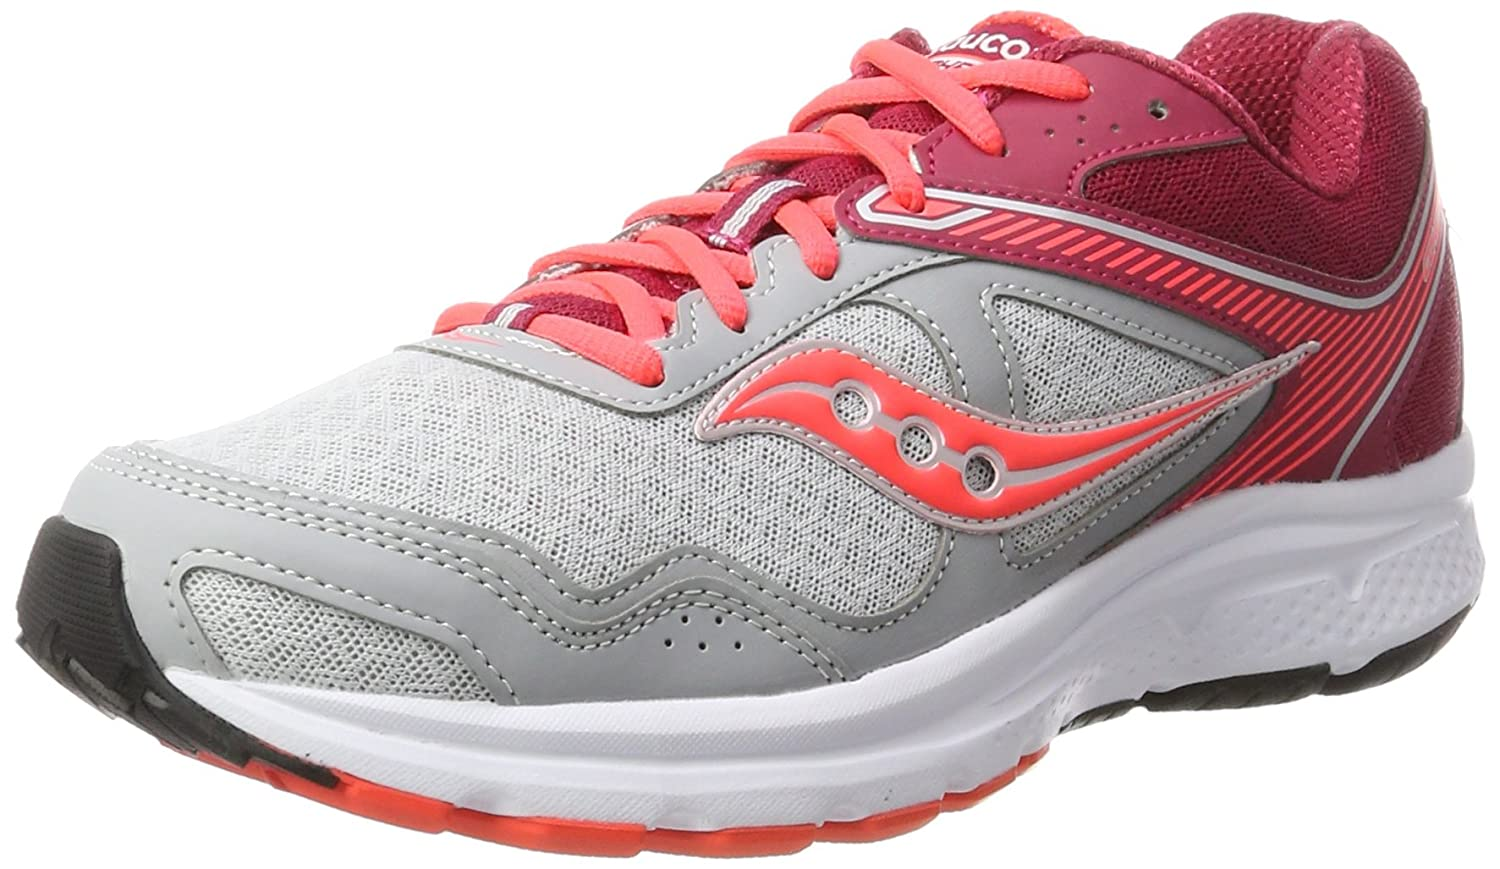 Saucony Women's Cohesion 10 Running Shoes S15333-18